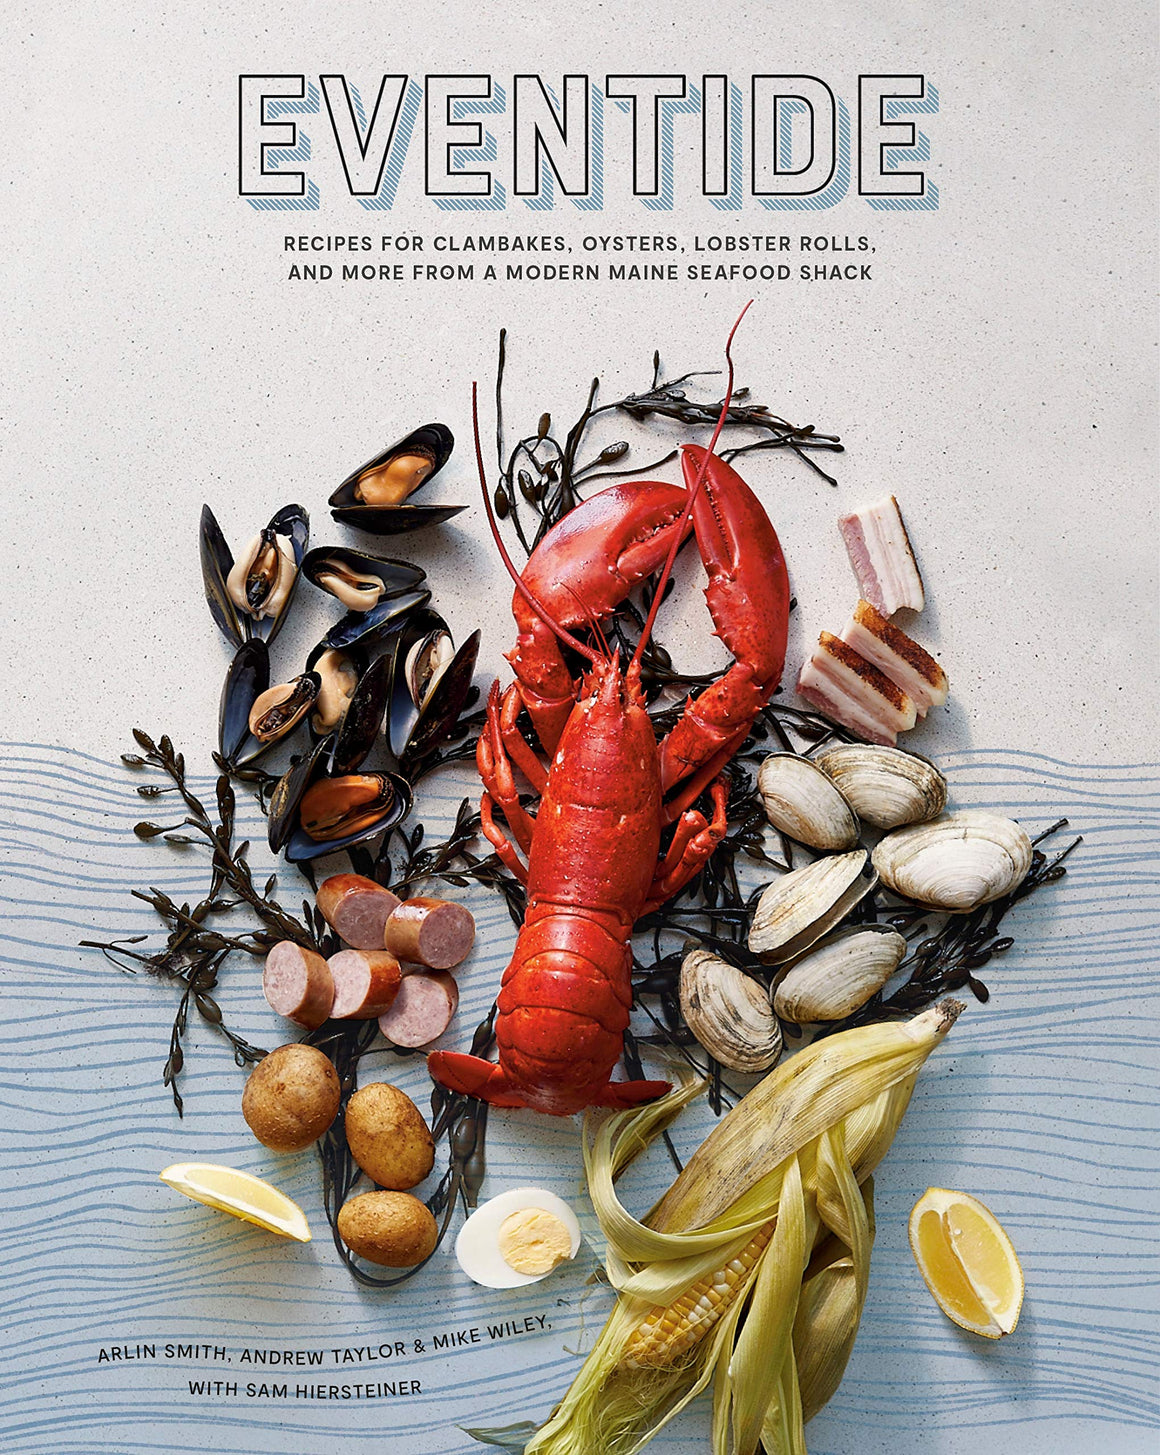 PRE-ORDER! Arlin Smith, Andrew Taylor, Mike Wiley, and Sam Hiersteiner. Eventide: Recipes for Clambakes, Oysters, Lobster Rolls, and More from a Modern Maine Seafood Shack. Expected: June 2020